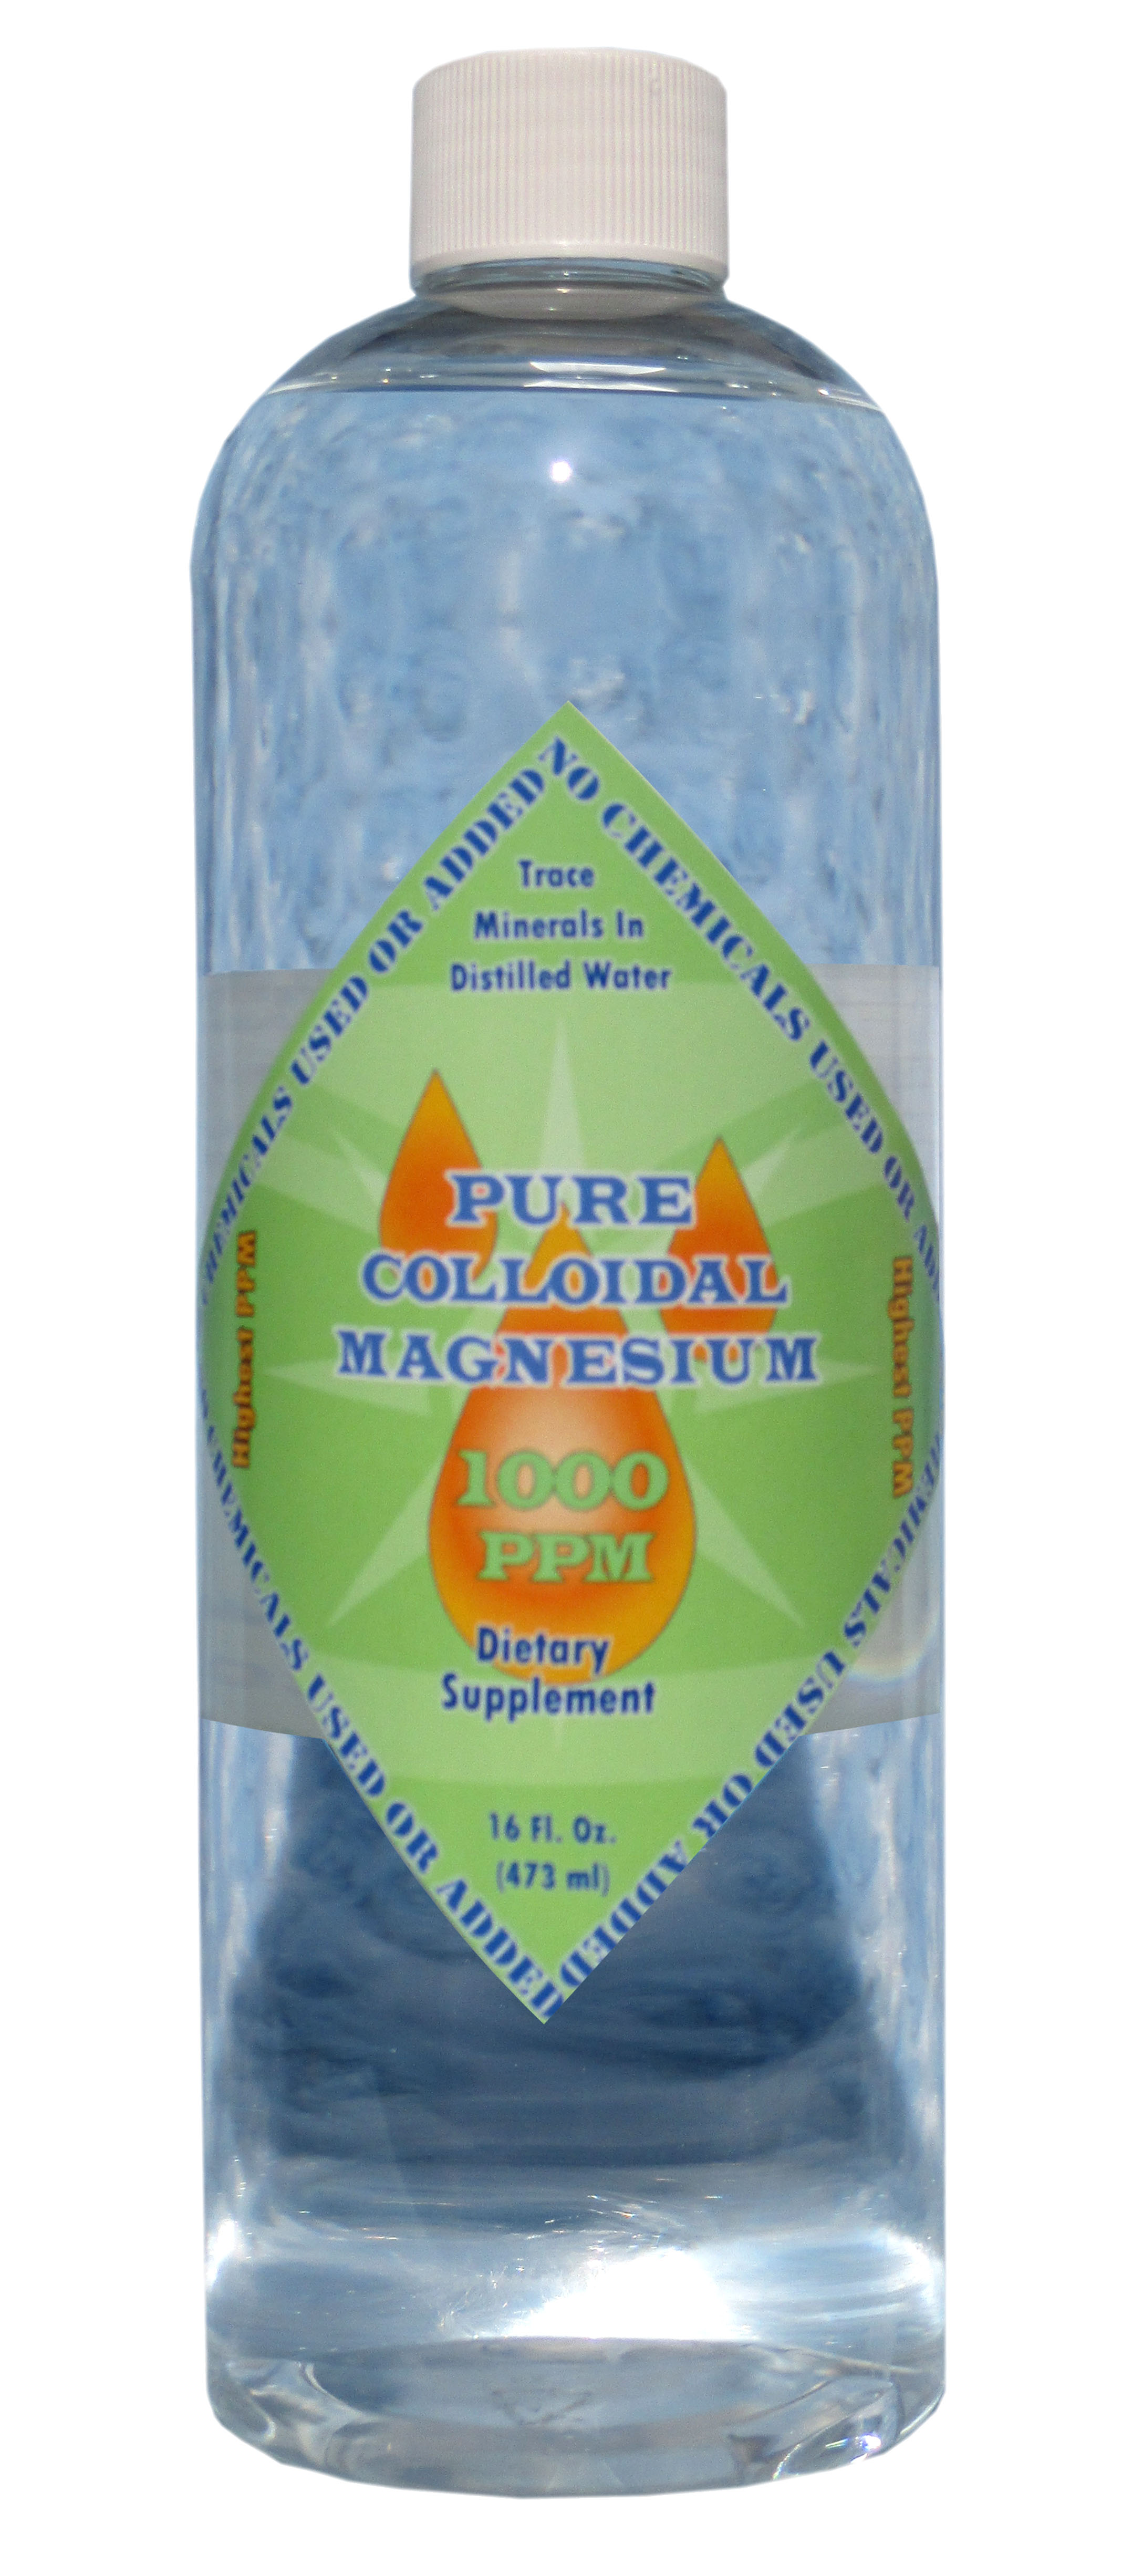 Pure Colloidal Magnesium 1000 PPM